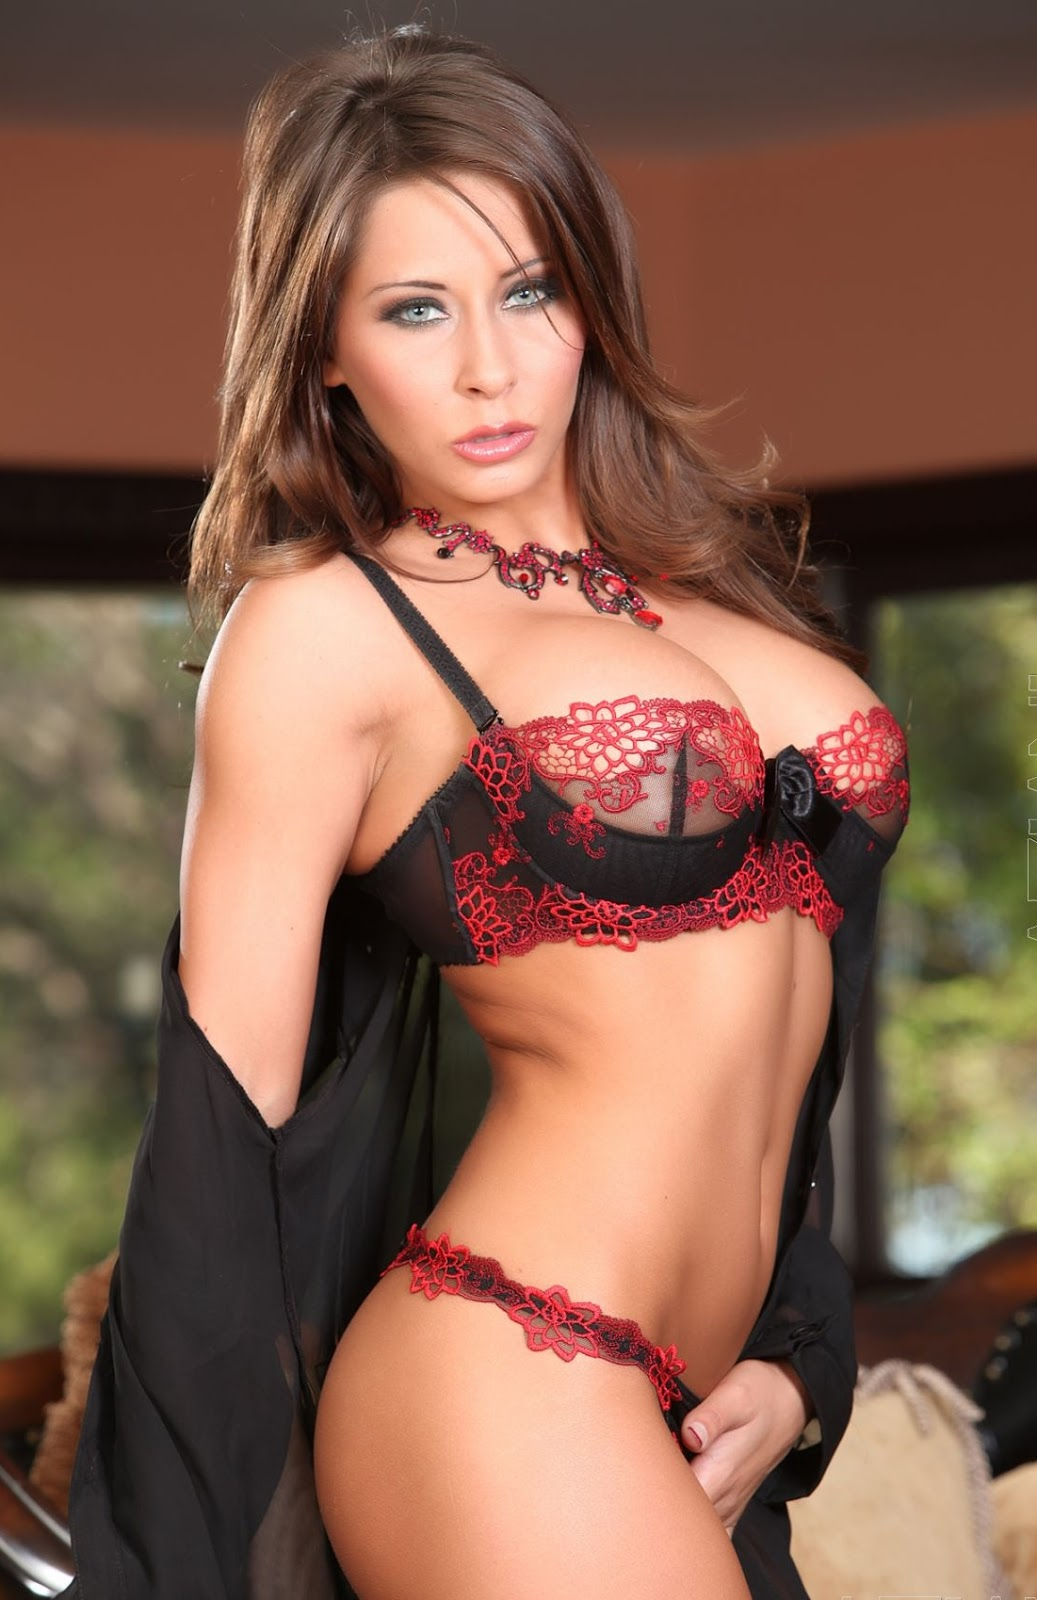 Madison ivy warm hands